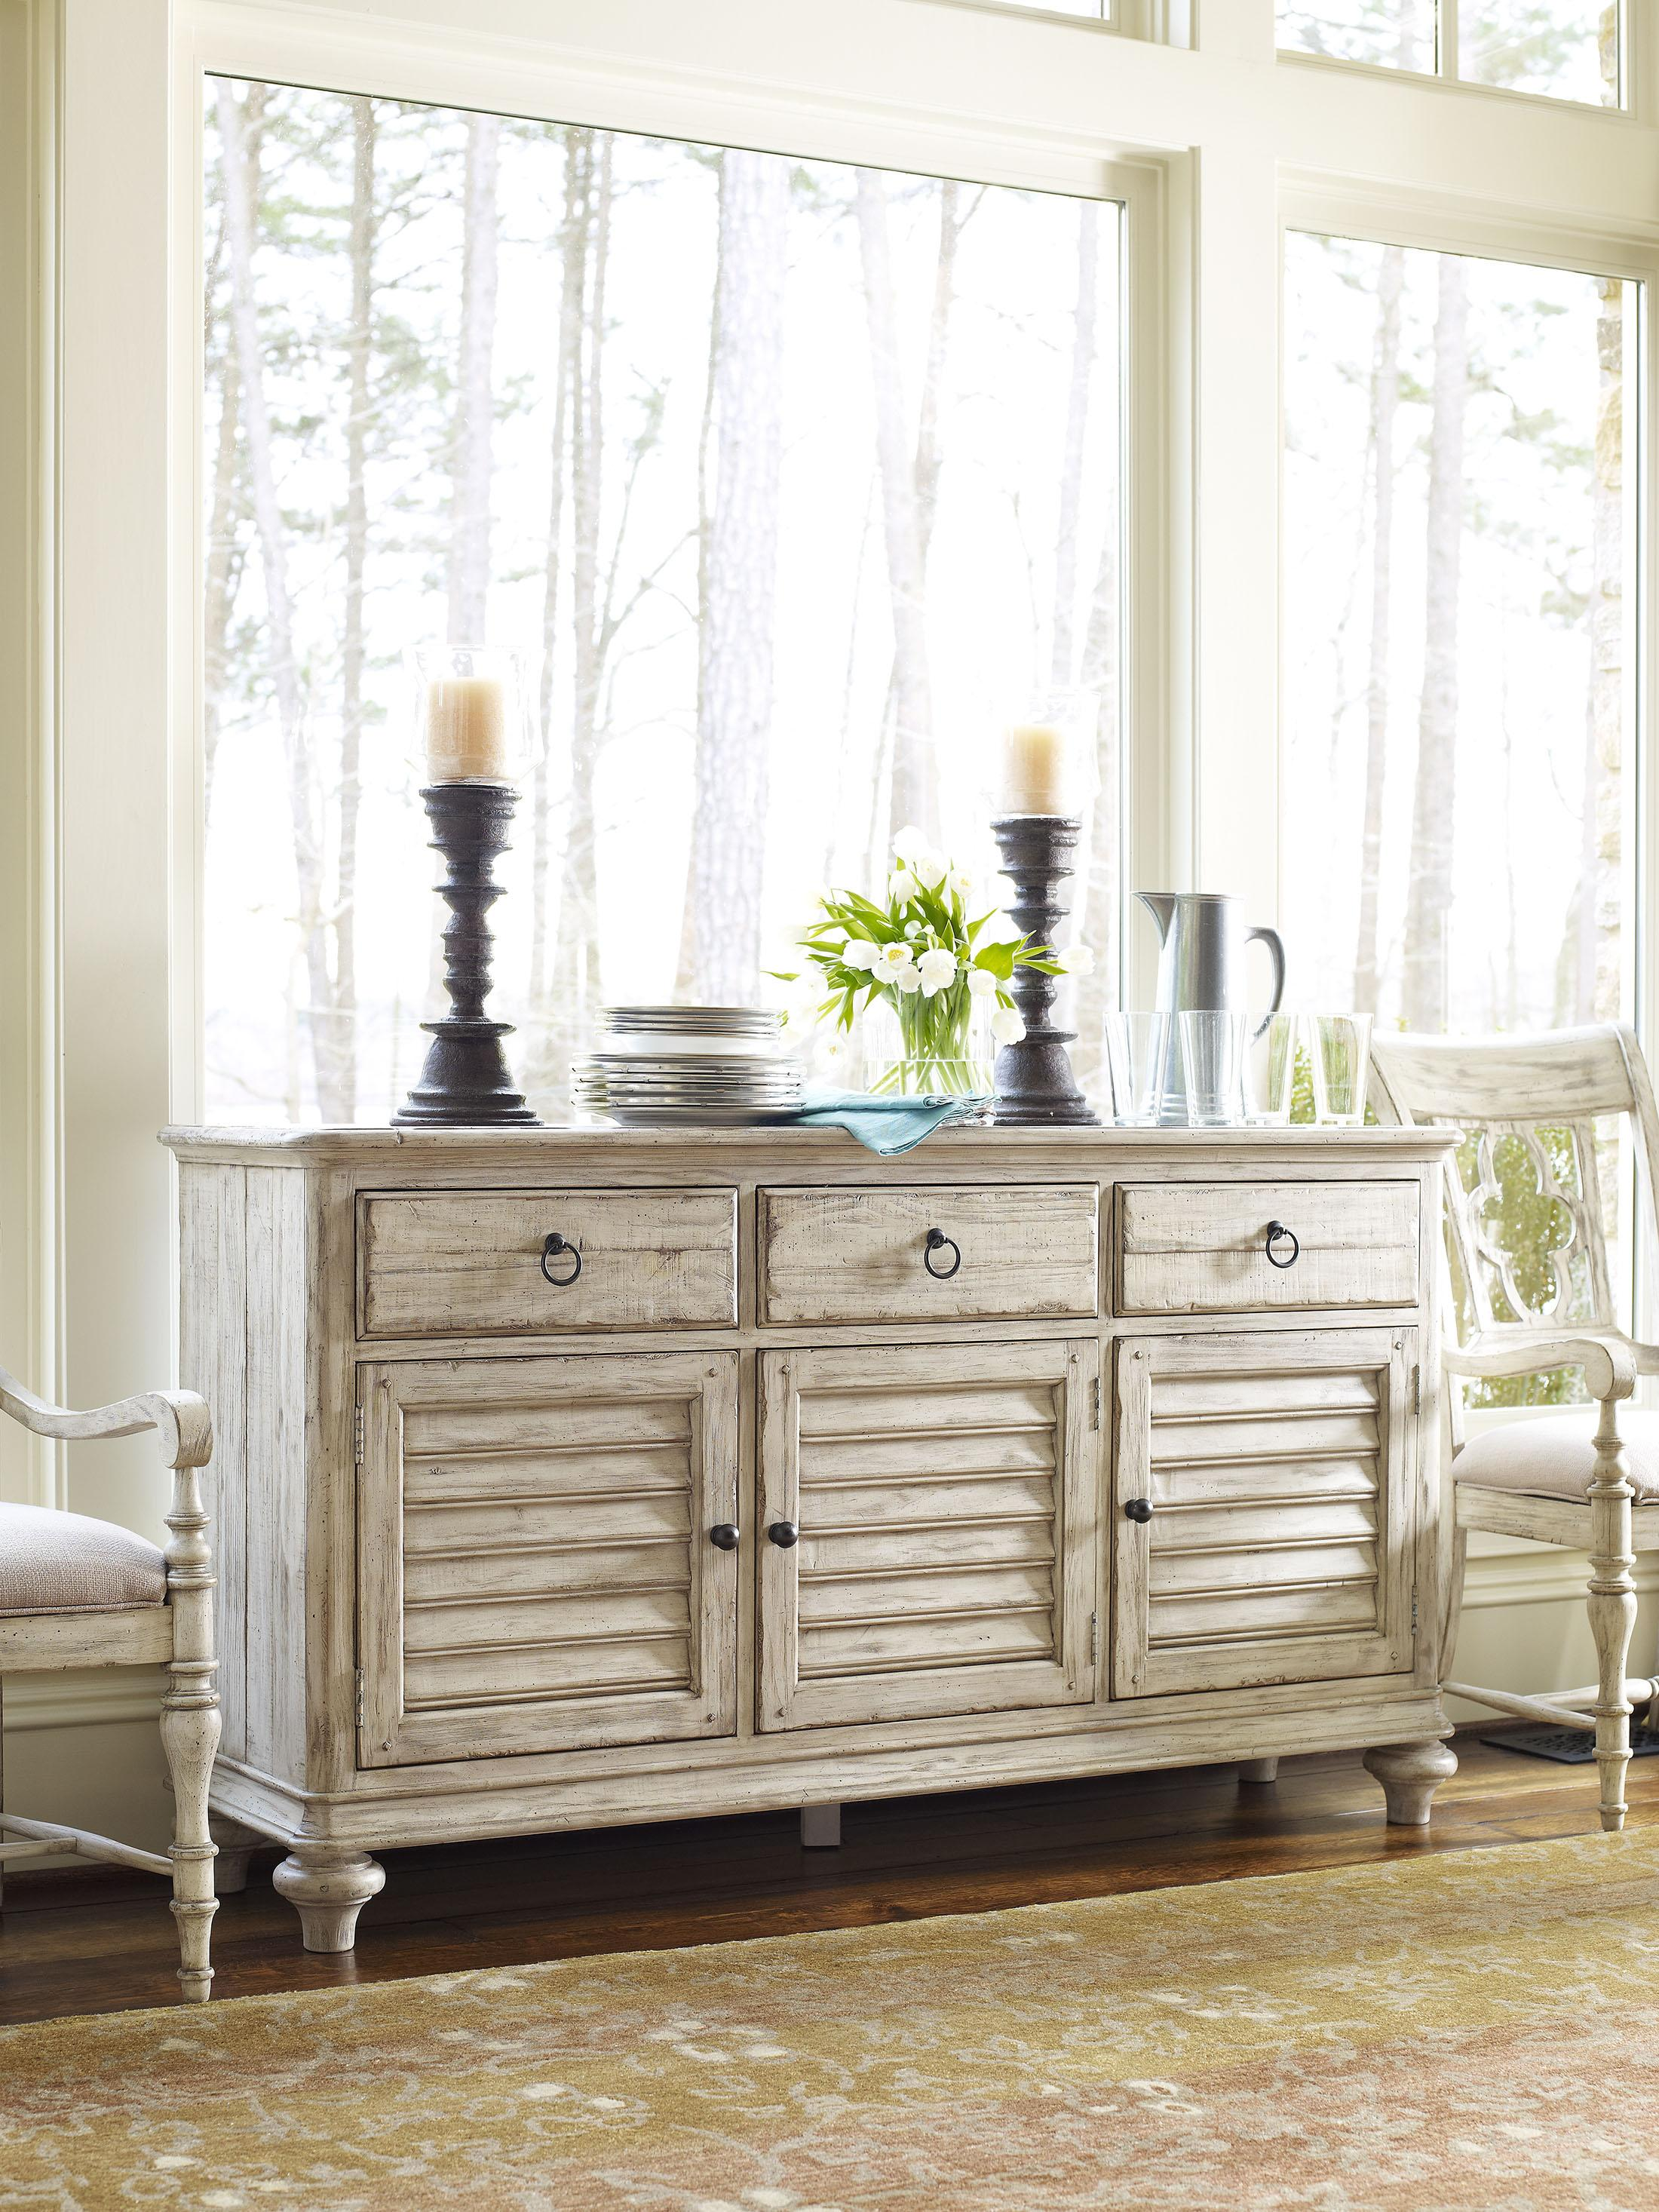 Hastings Buffet With 3 Drawers And 3 Shutter Style Doors. By Kincaid  Furniture